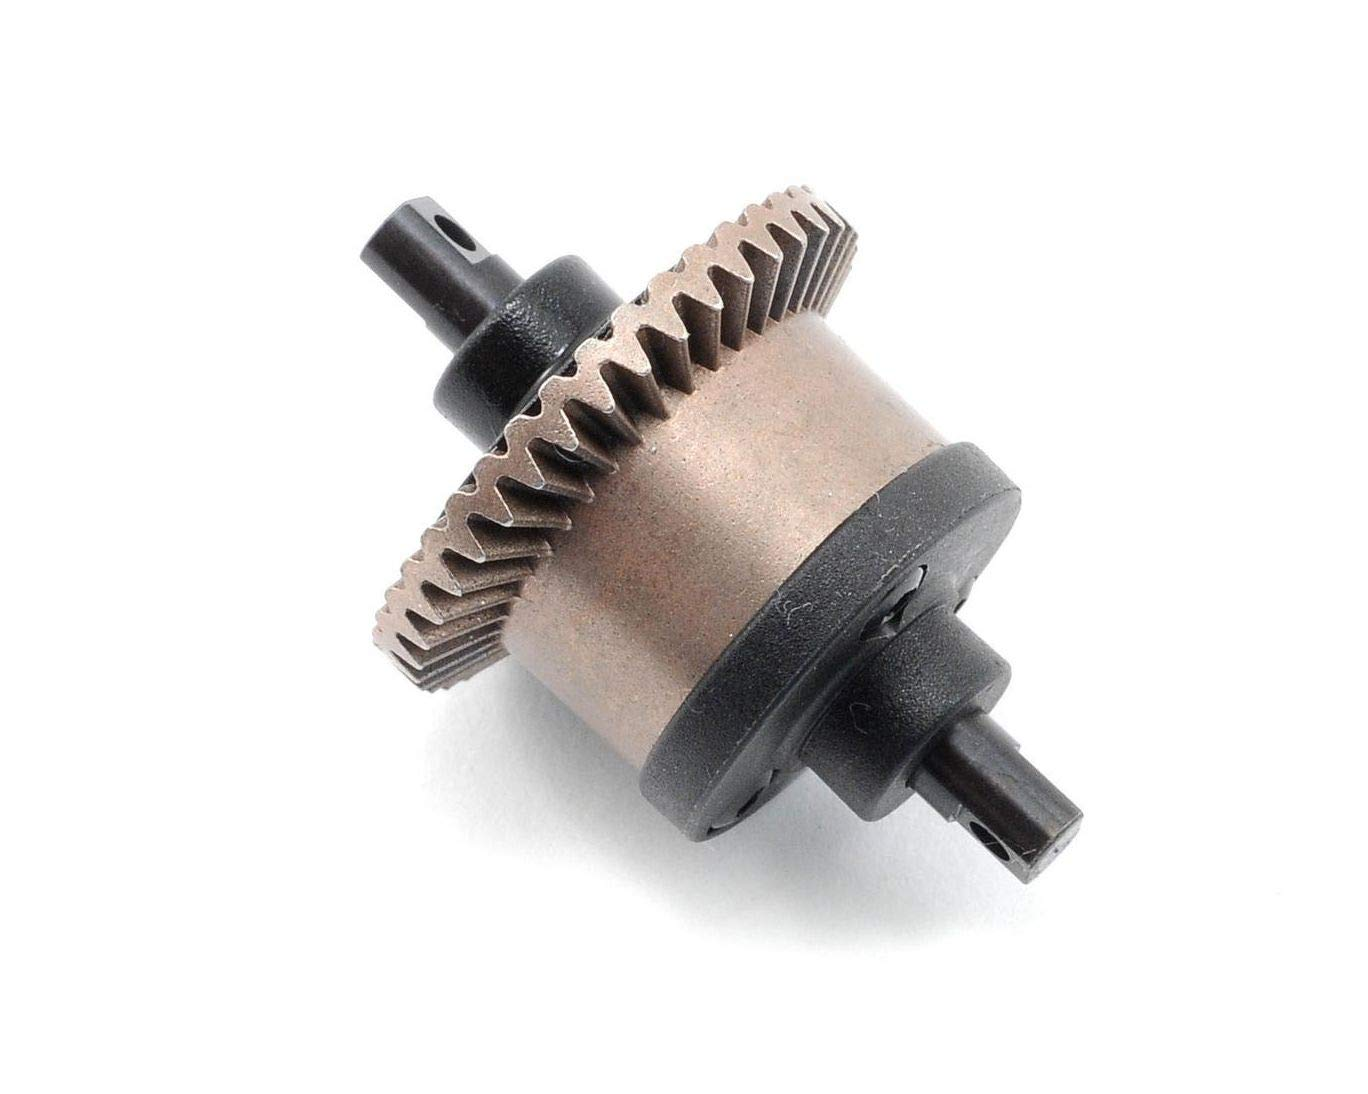 TR7078 TRA7078 TTraxxass Max 71% Ranking TOP16 OFF Complete Differential trax7078 Assembly